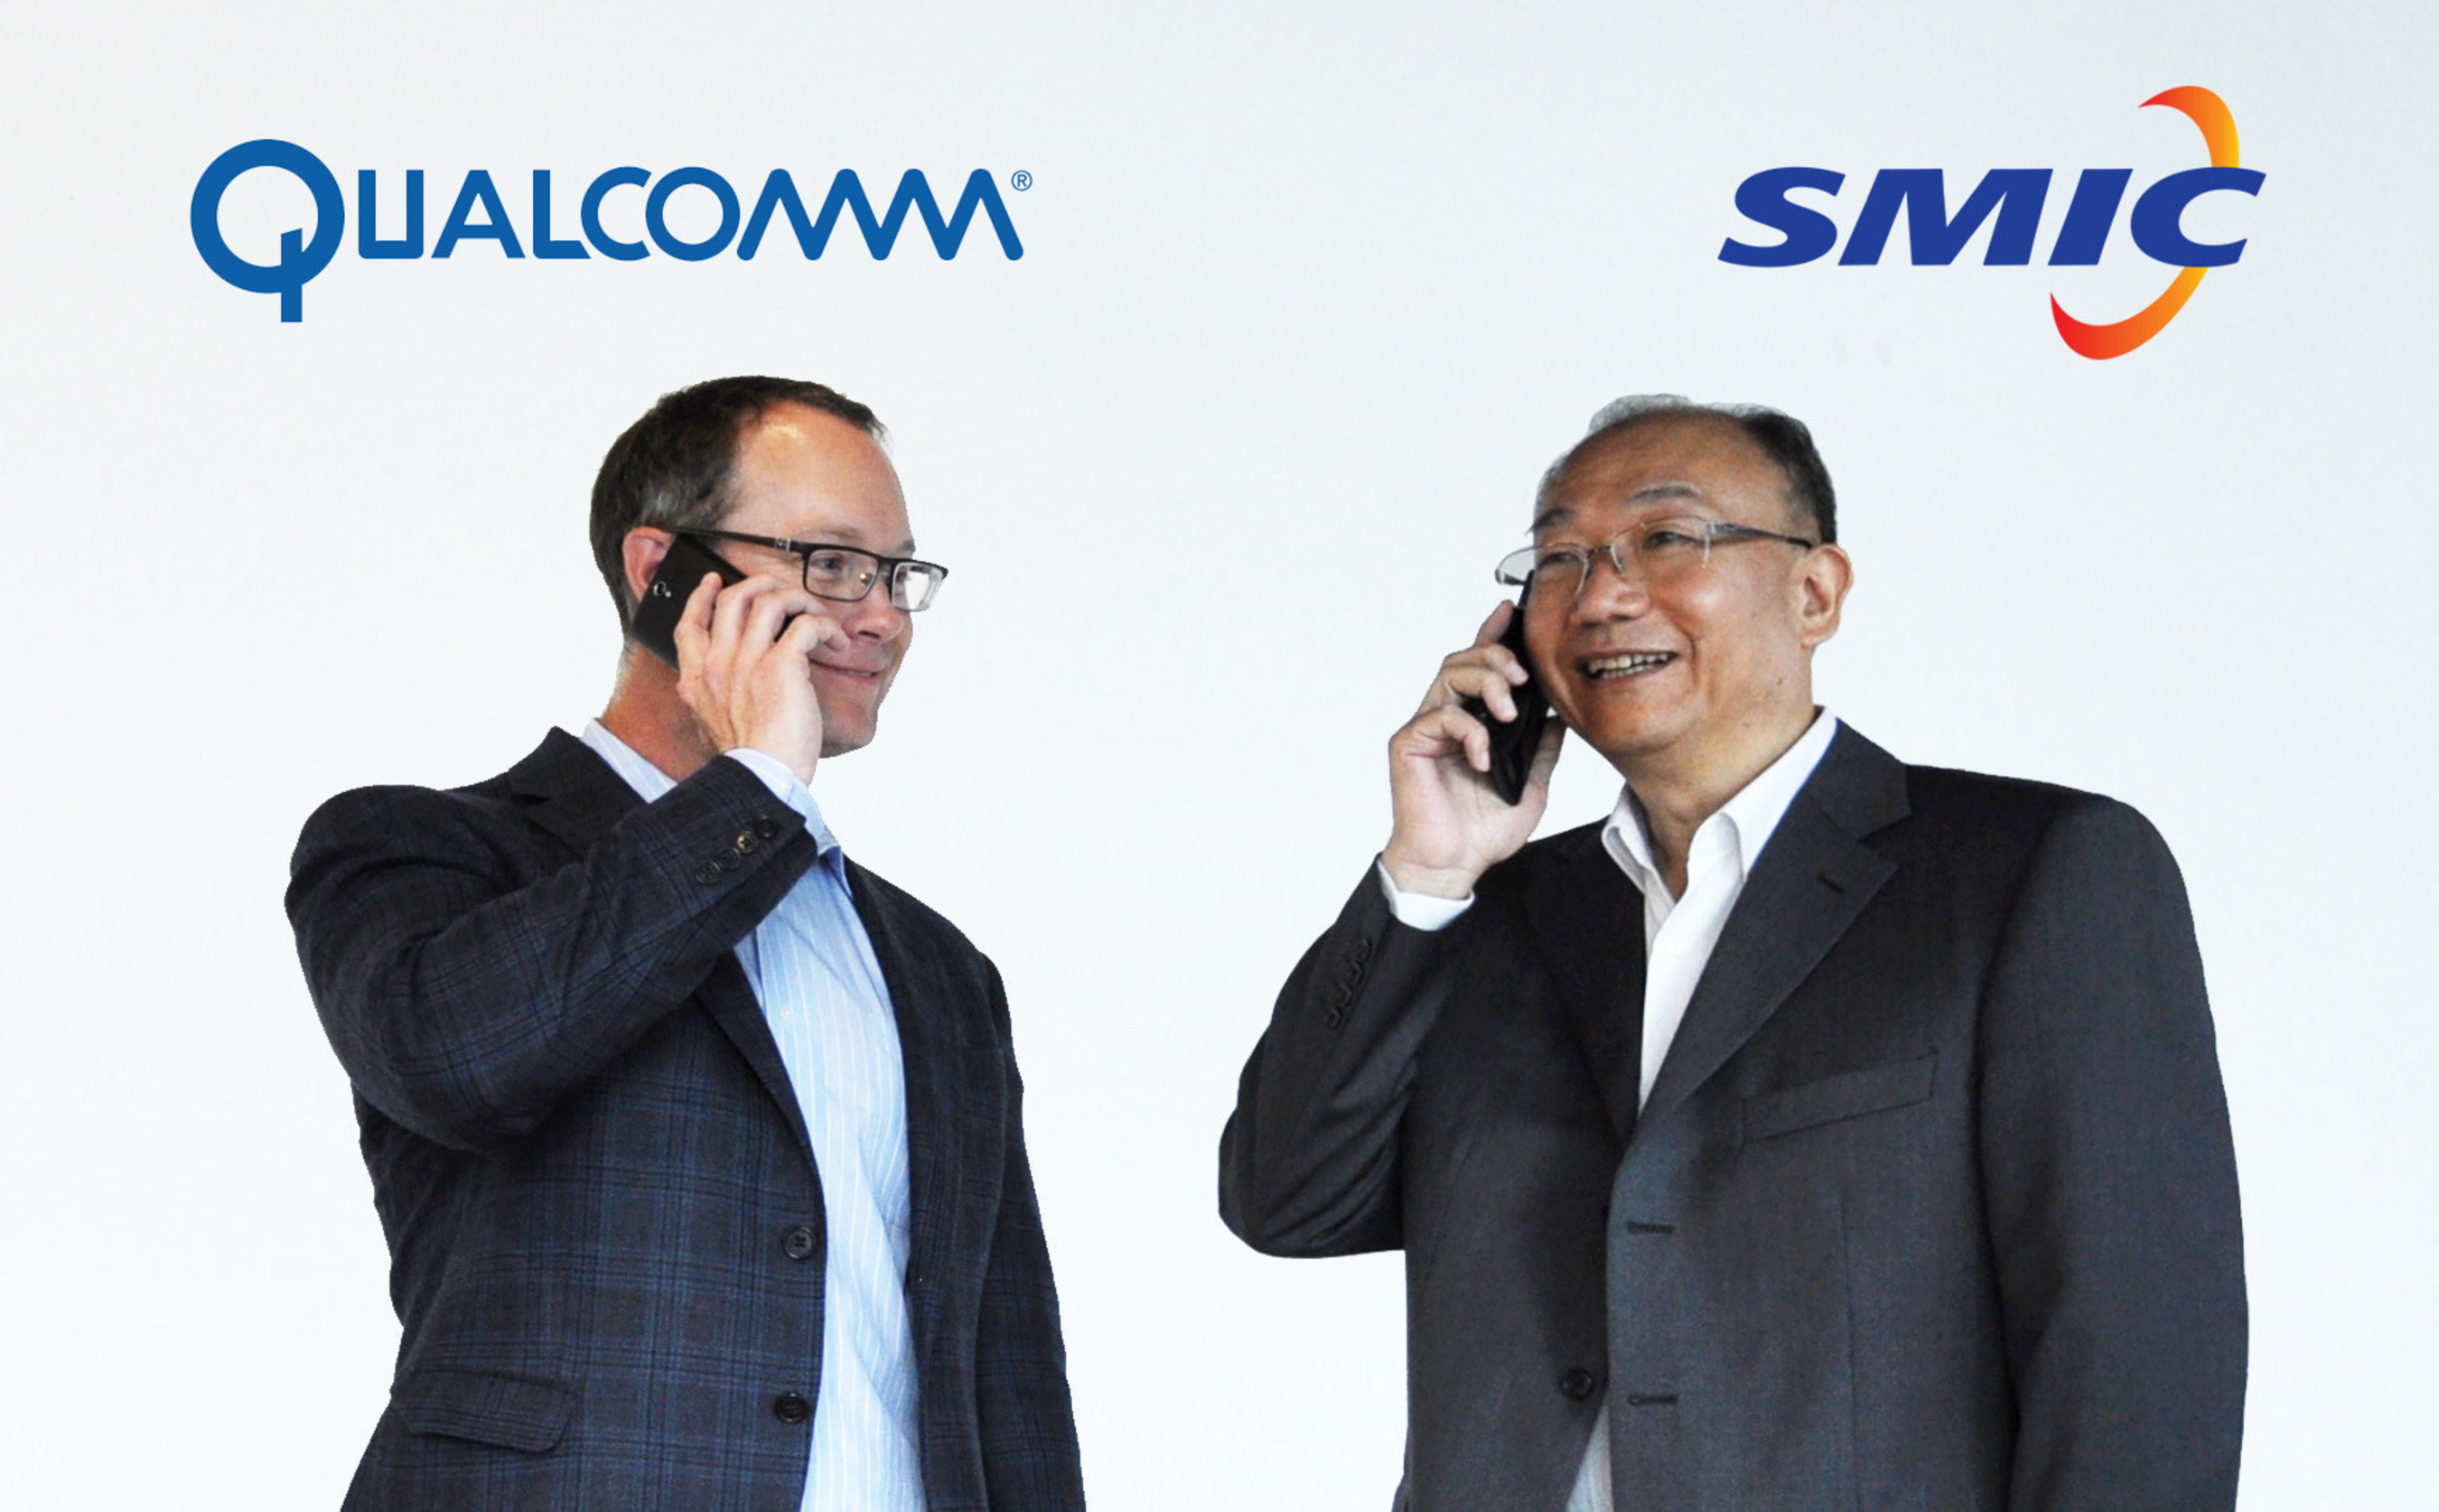 SMIC's 28nm Chips Power Mainstream Smartphones Marking a New Era for Advanced Chip Manufacturing in China